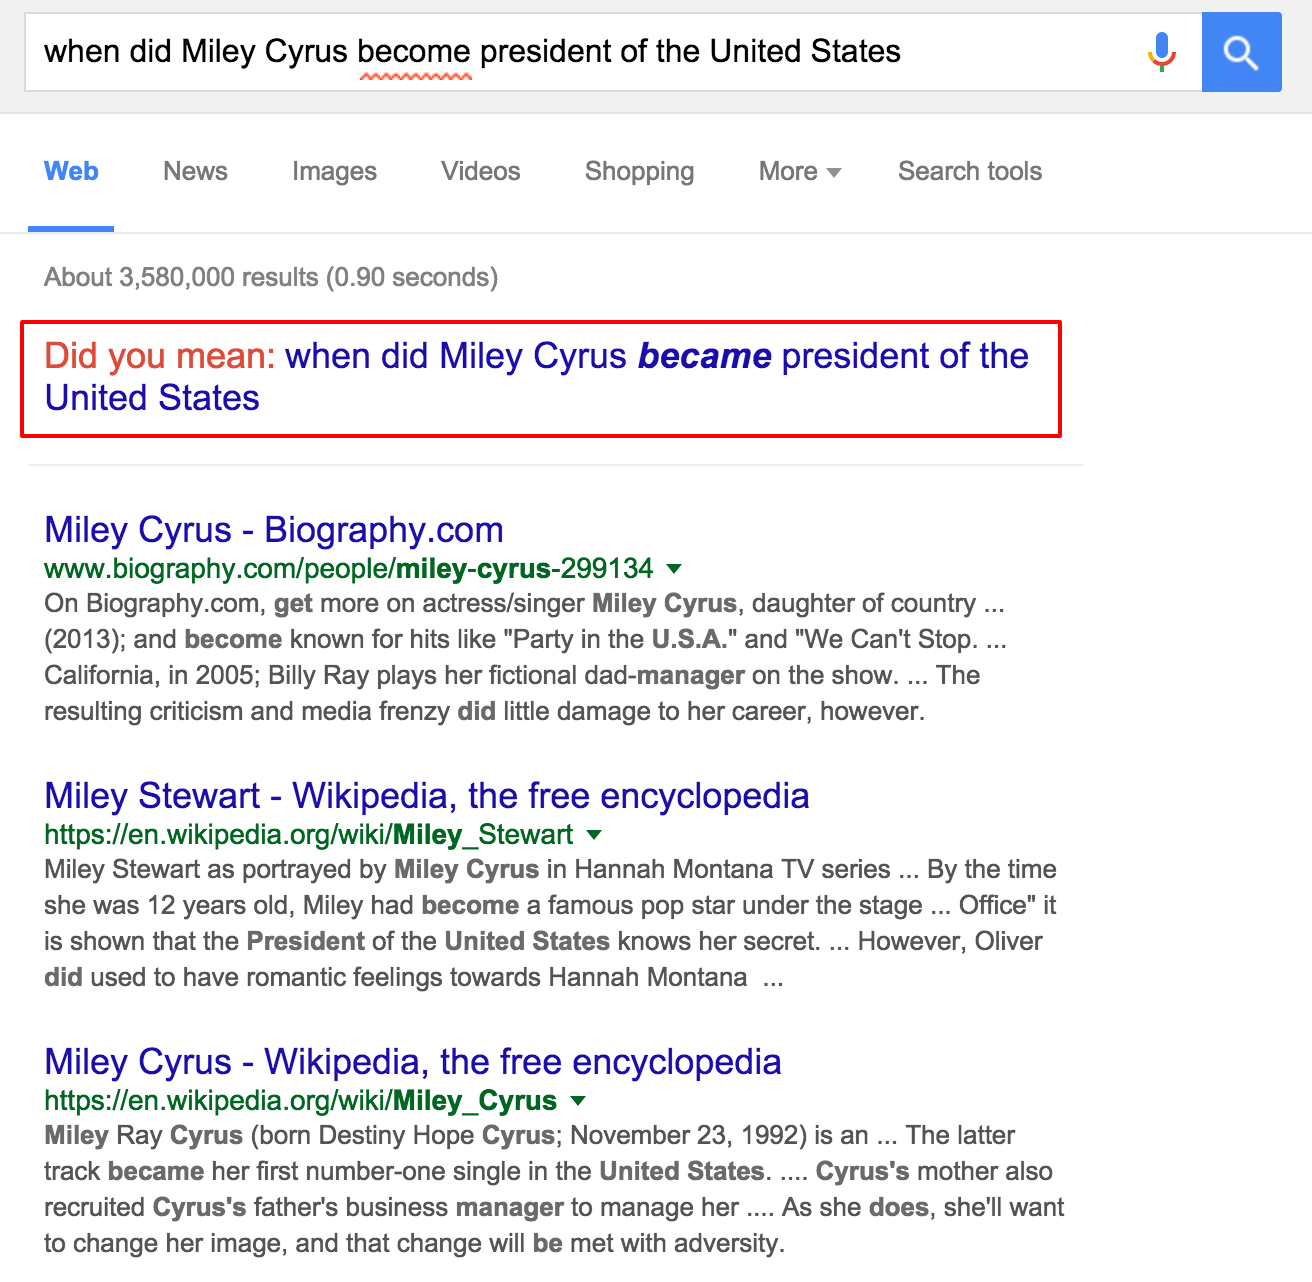 google voice search - when did miley cyrus become president